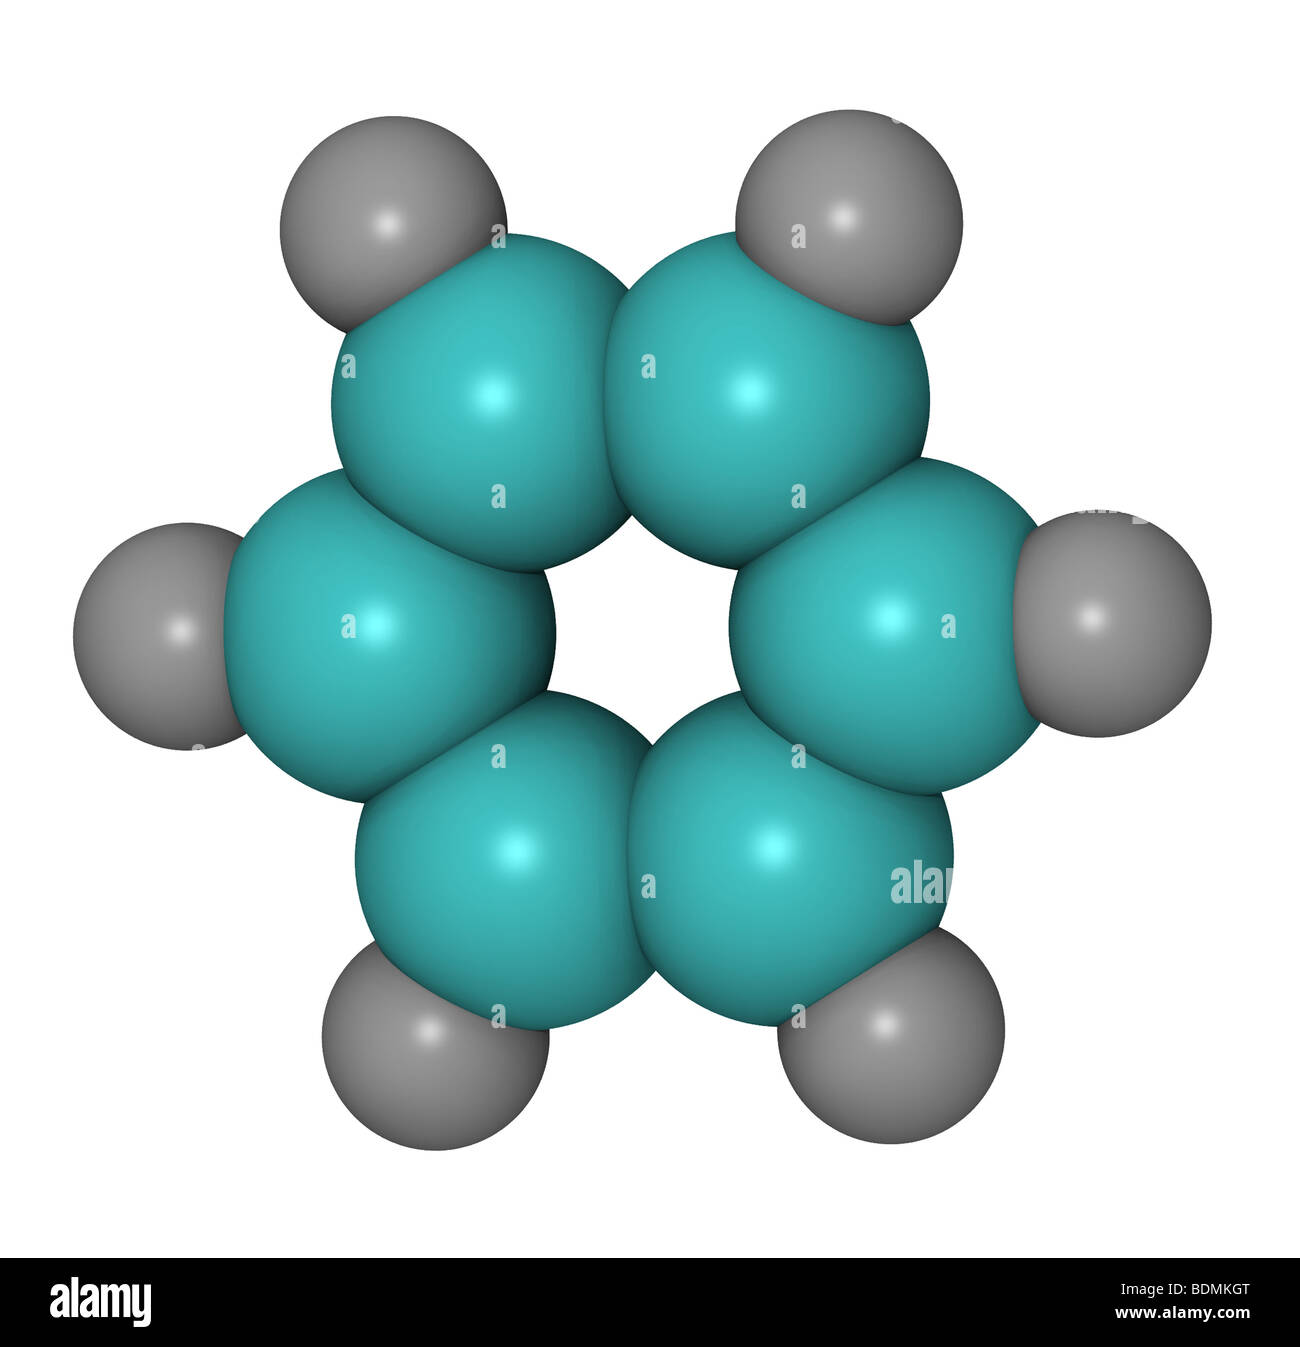 3D computer generated model of the benzene ring - Stock Image